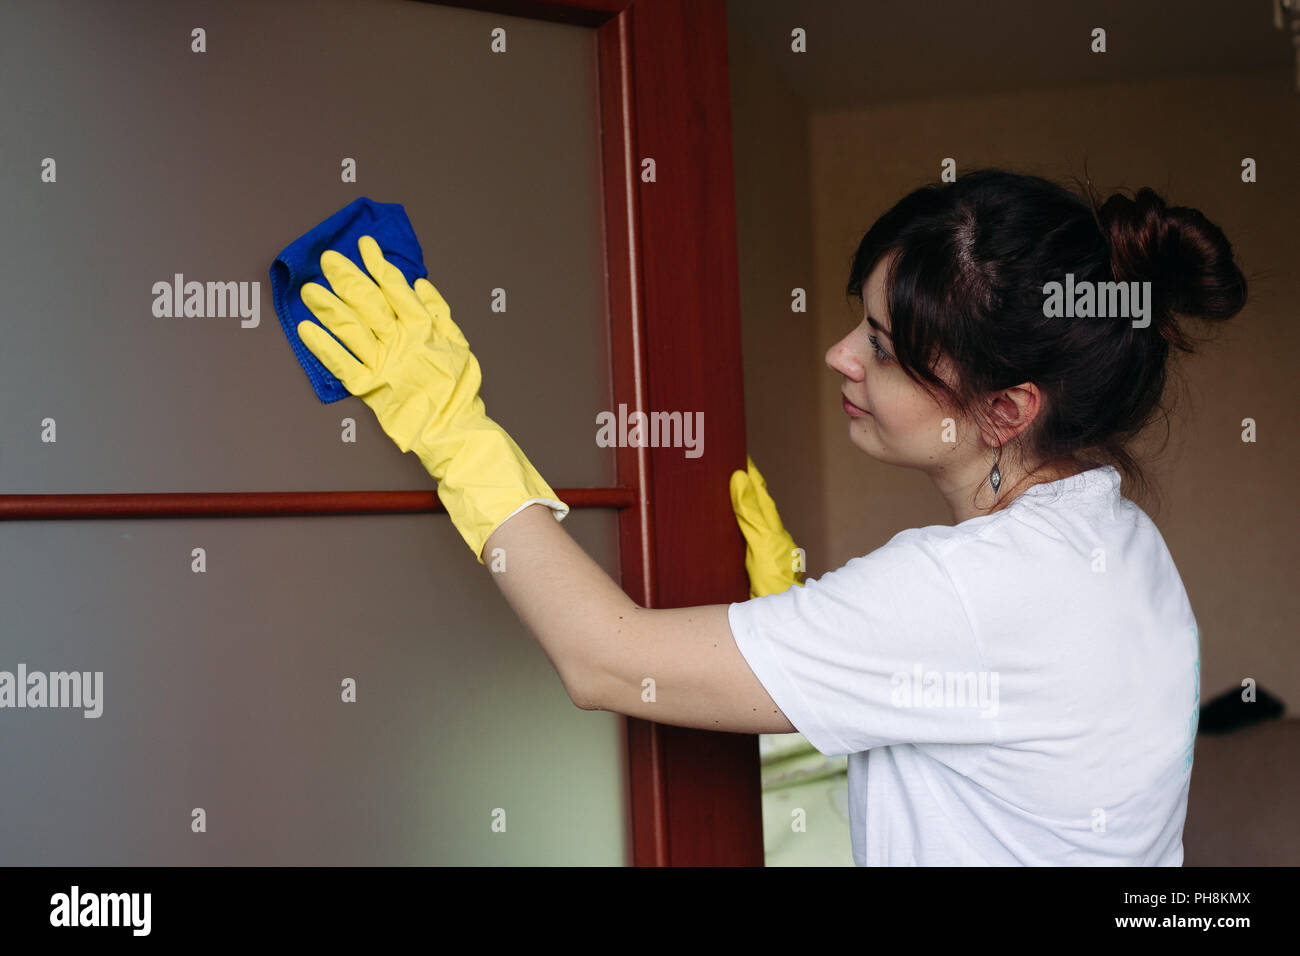 Young brunette housewife cleaning door with rag. - Stock Image